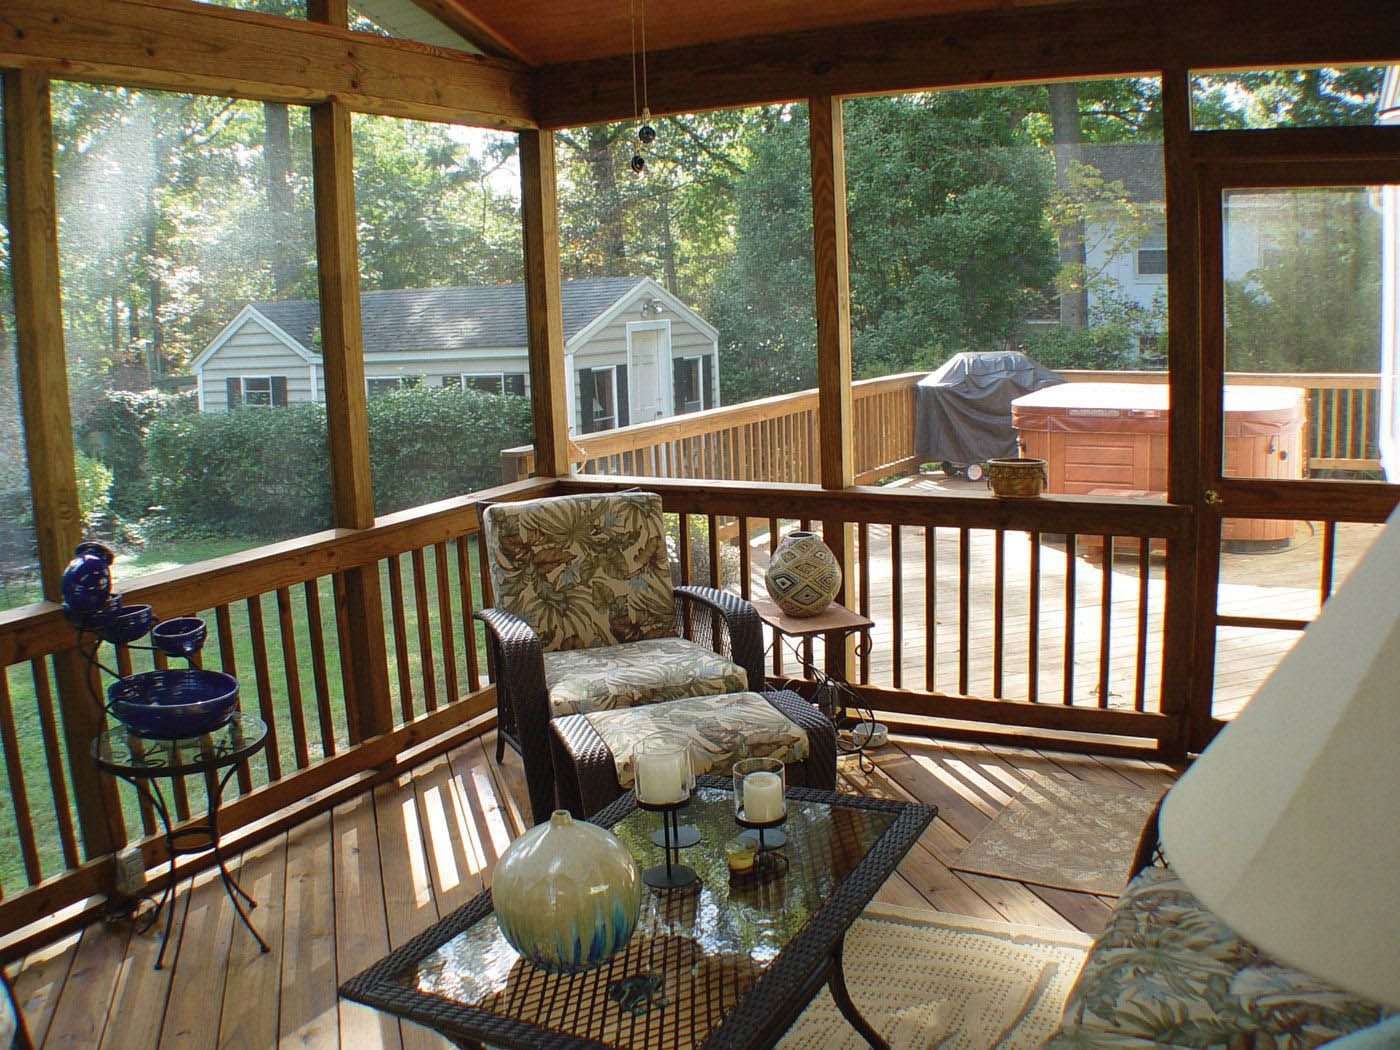 Best 5 Ideas For Covering Your Deck Porch Interior Screened Porch Designs House With Porch